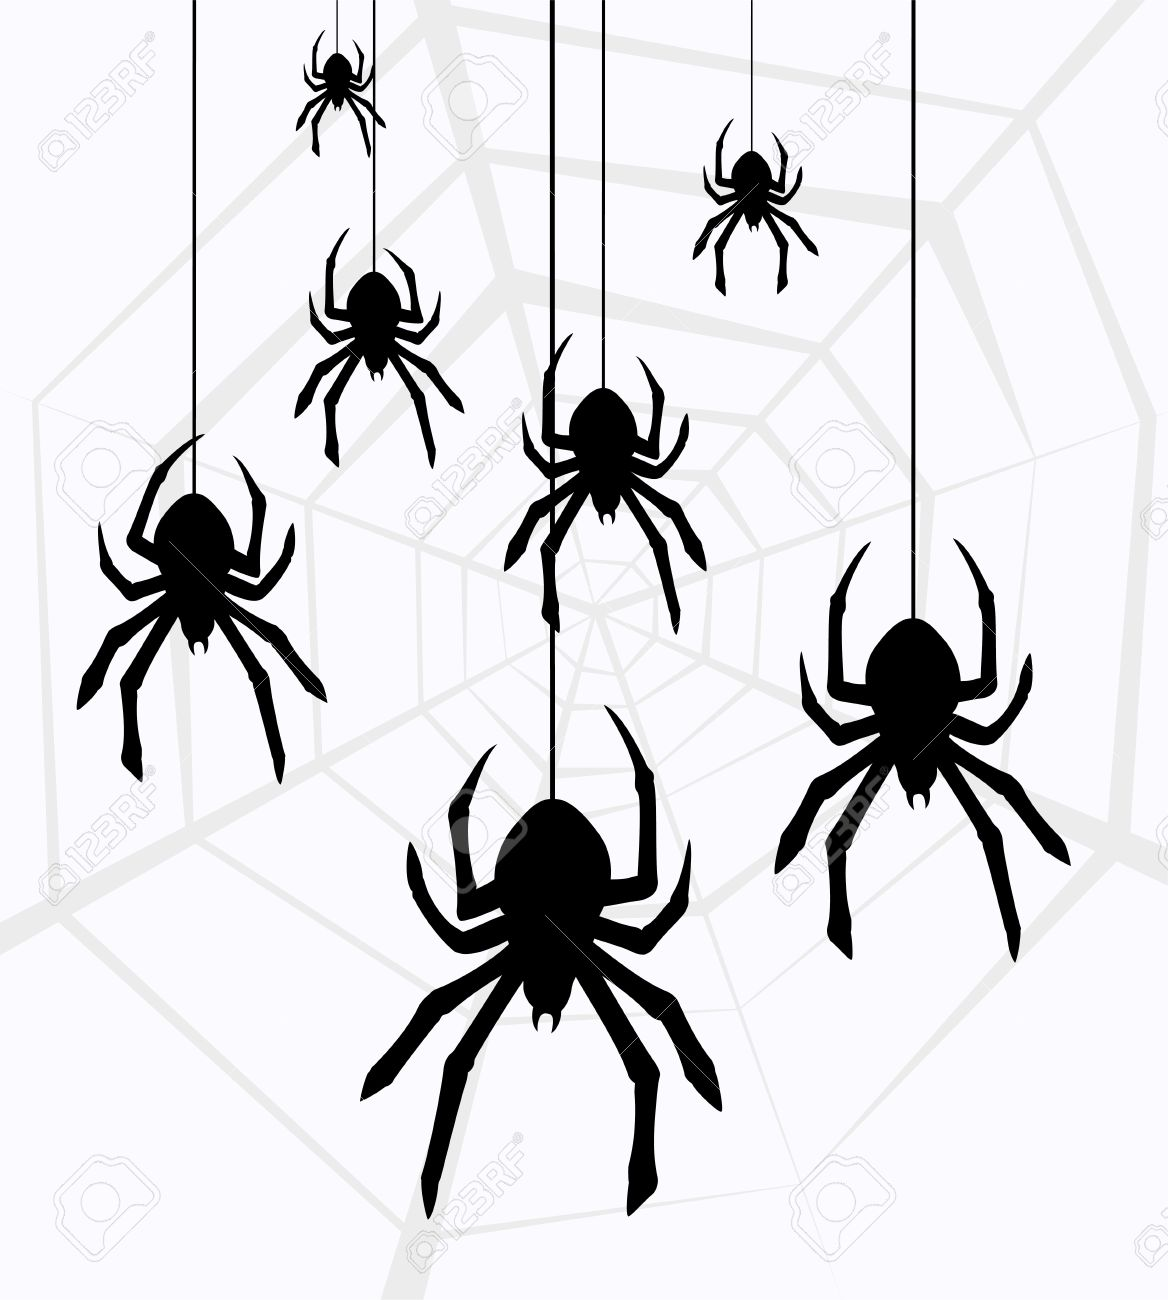 1168x1300 Cute Spider Web Clipart Free Images 2